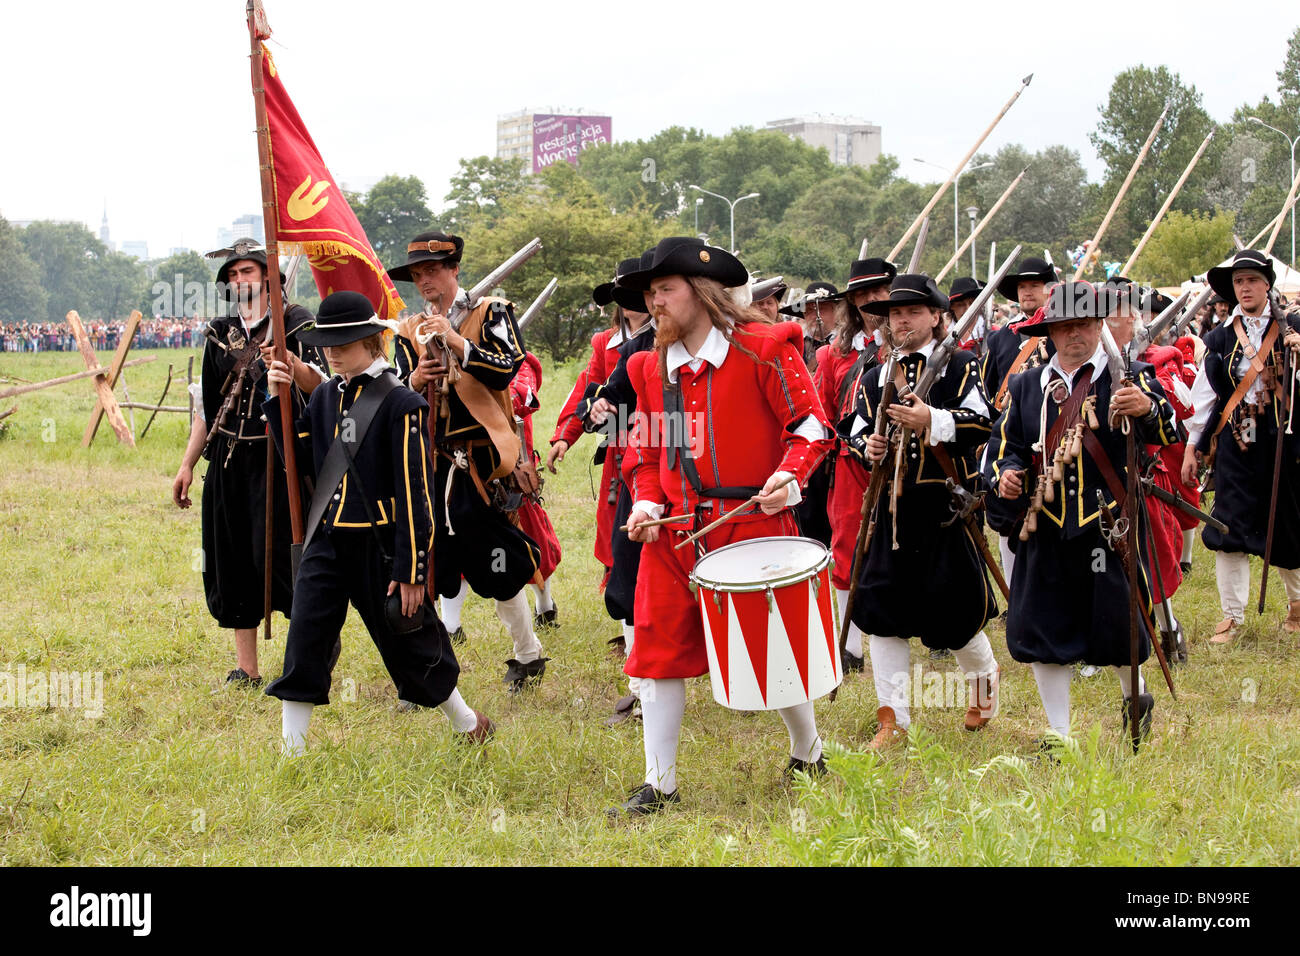 Infrantry squad at Battle of Klushino - 400 years festival in Warsaw, Poland, 3-4 of July 2010. Stock Photo